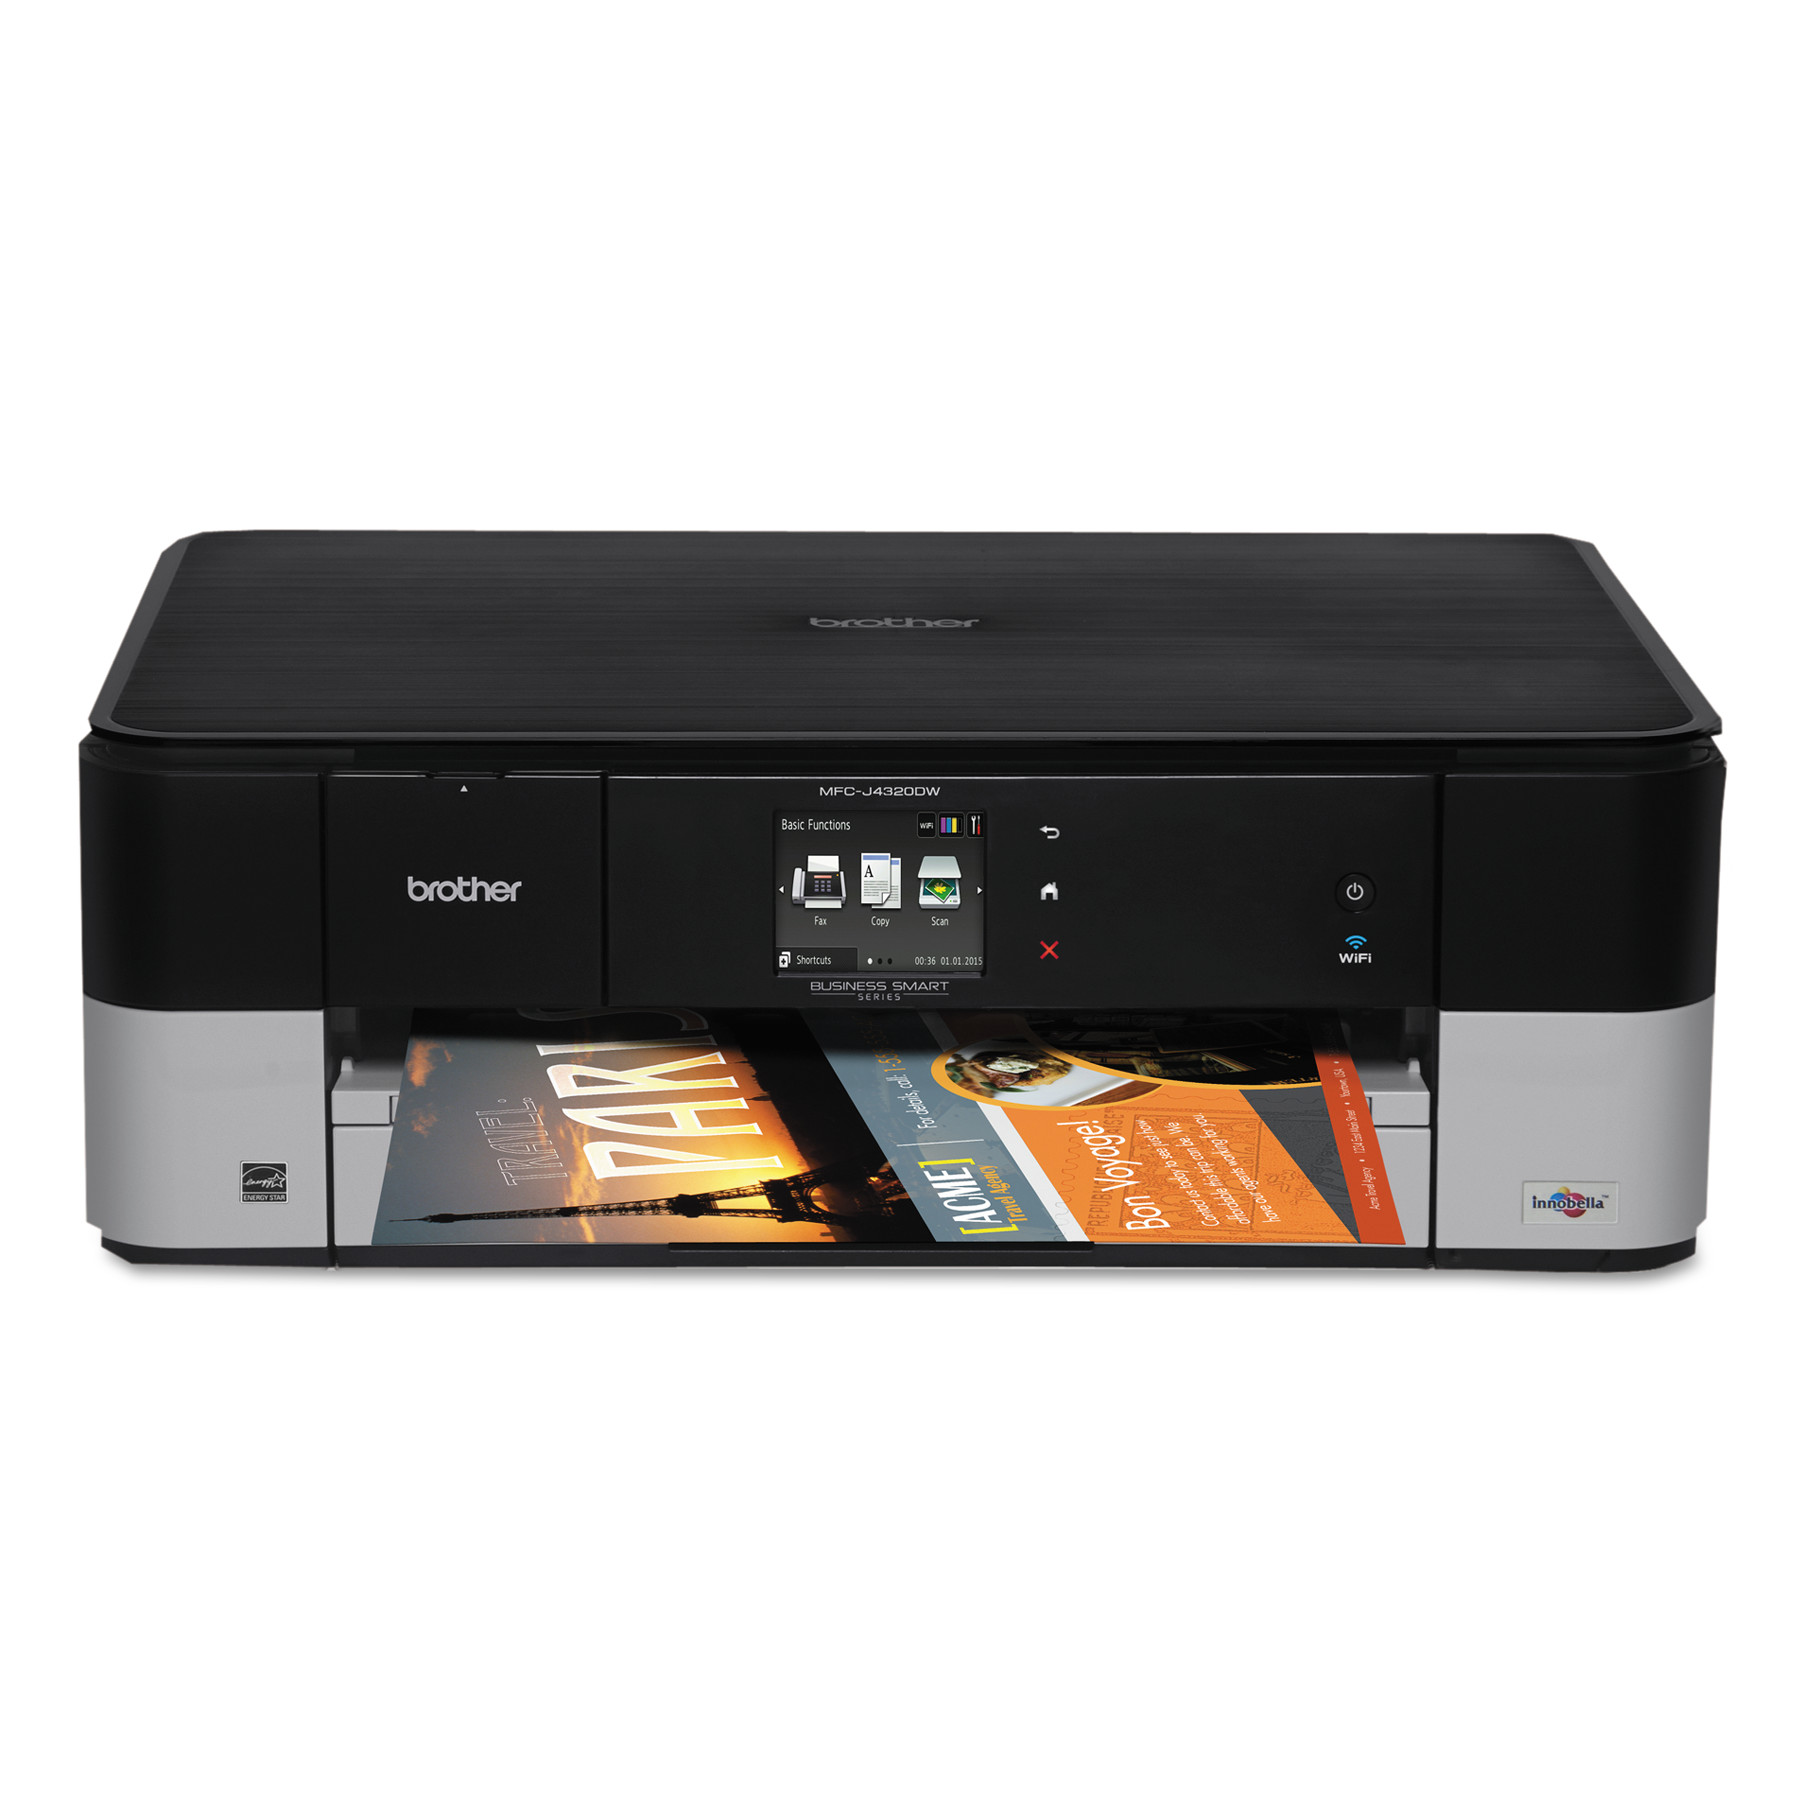 Brother Business Smart MFC-J4320DW Multifunction Inkjet Printer, Copy/Fax/Print/Scan